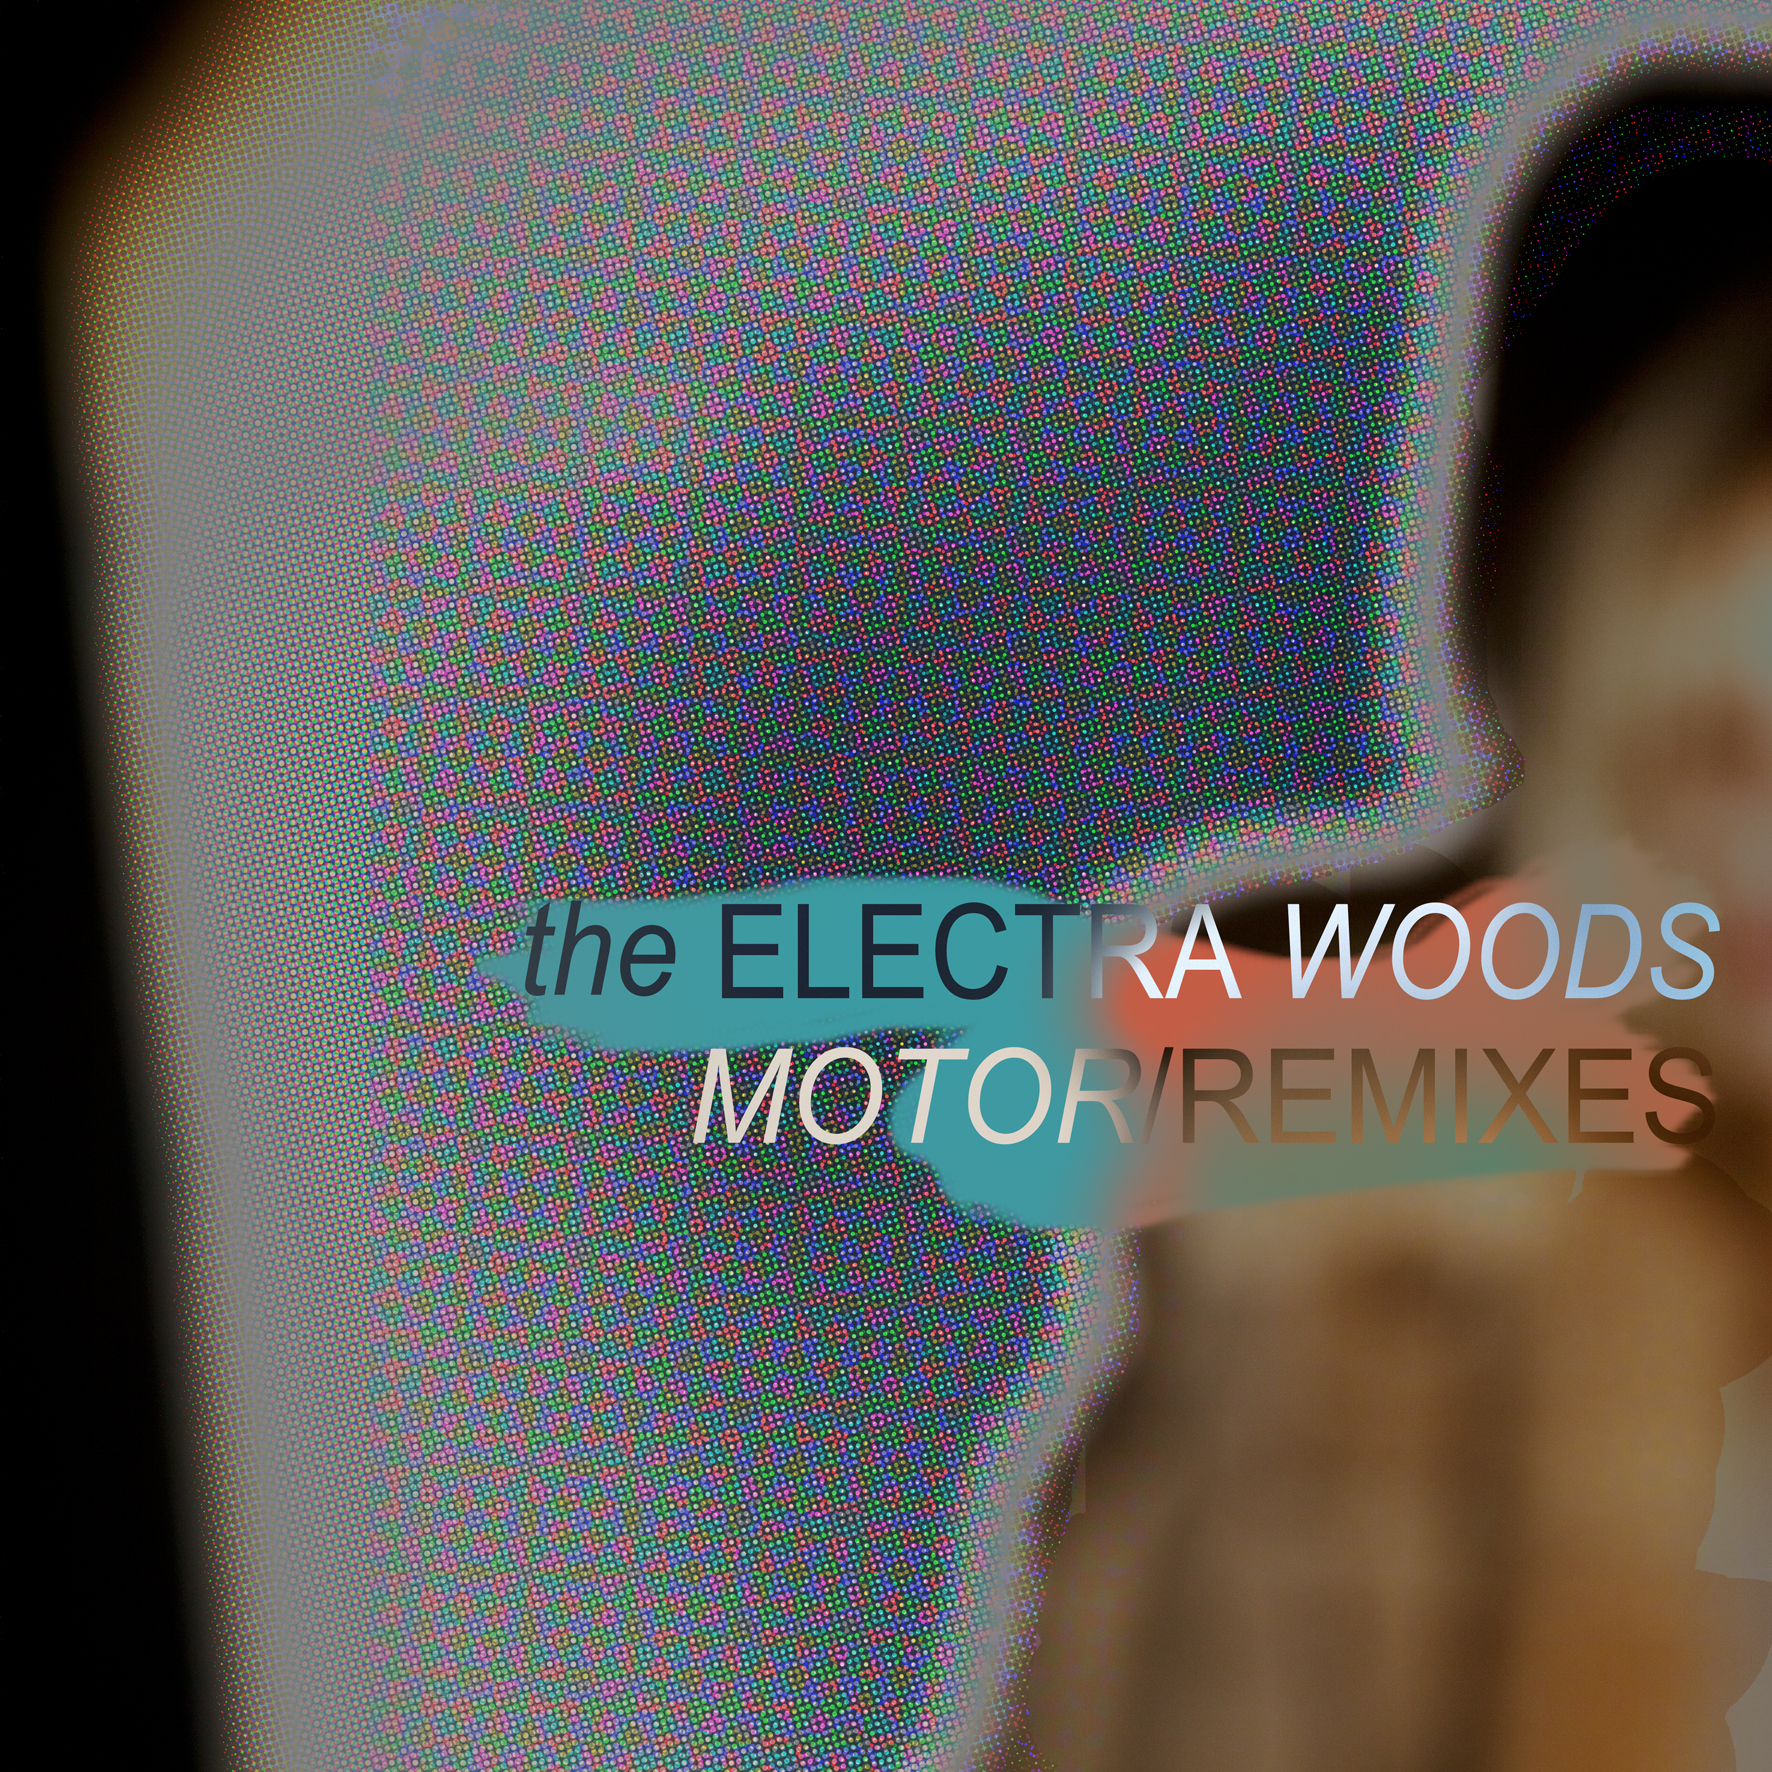 DEEP CLEAN MOTOR remixes The Electra Woods SML.jpg